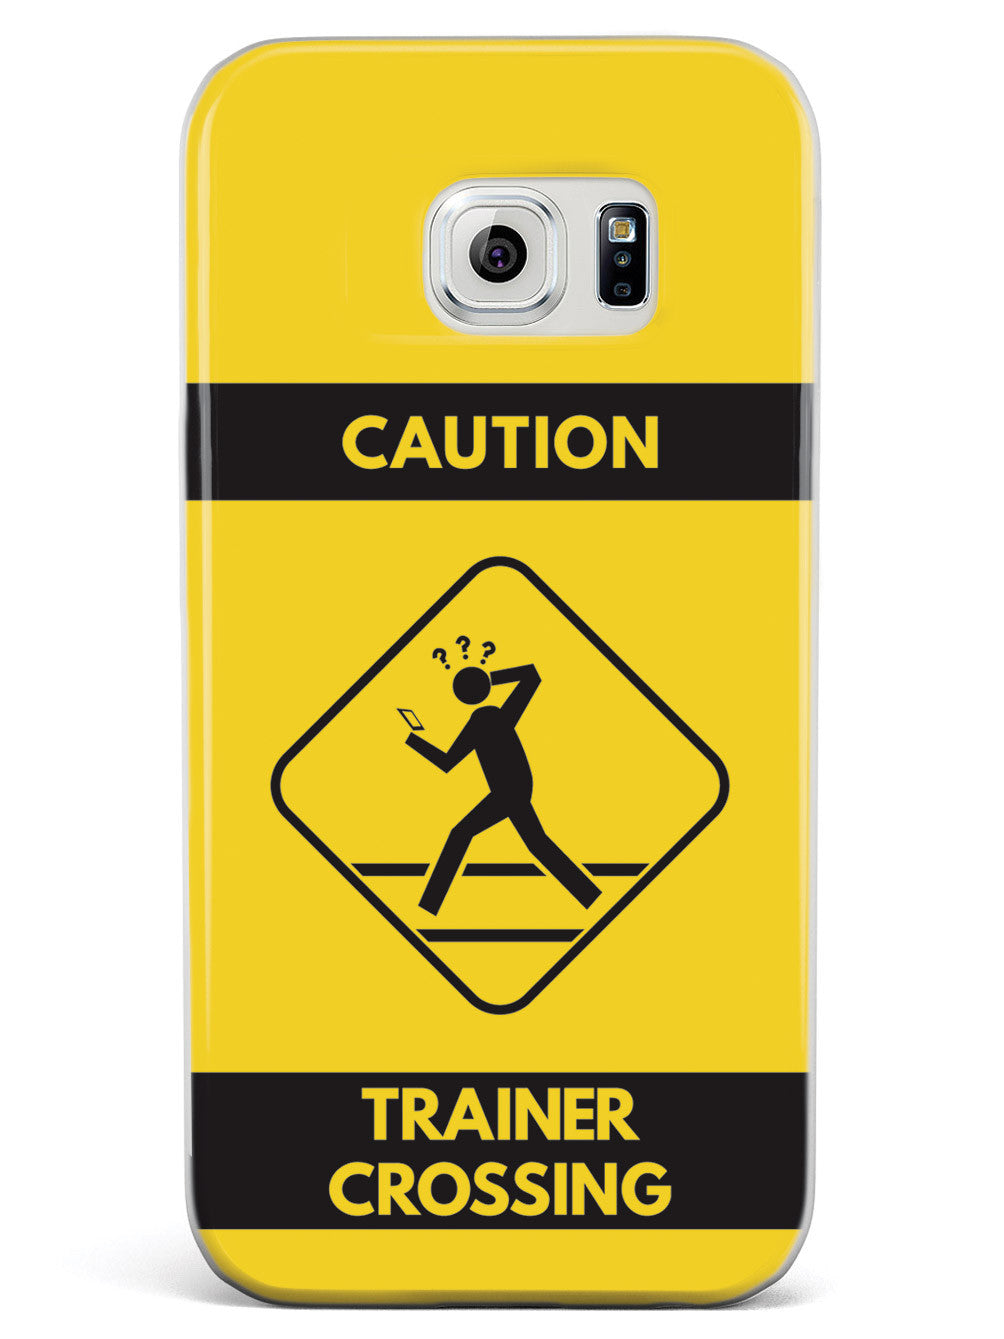 Caution Trainer Crossing - Yellow Case